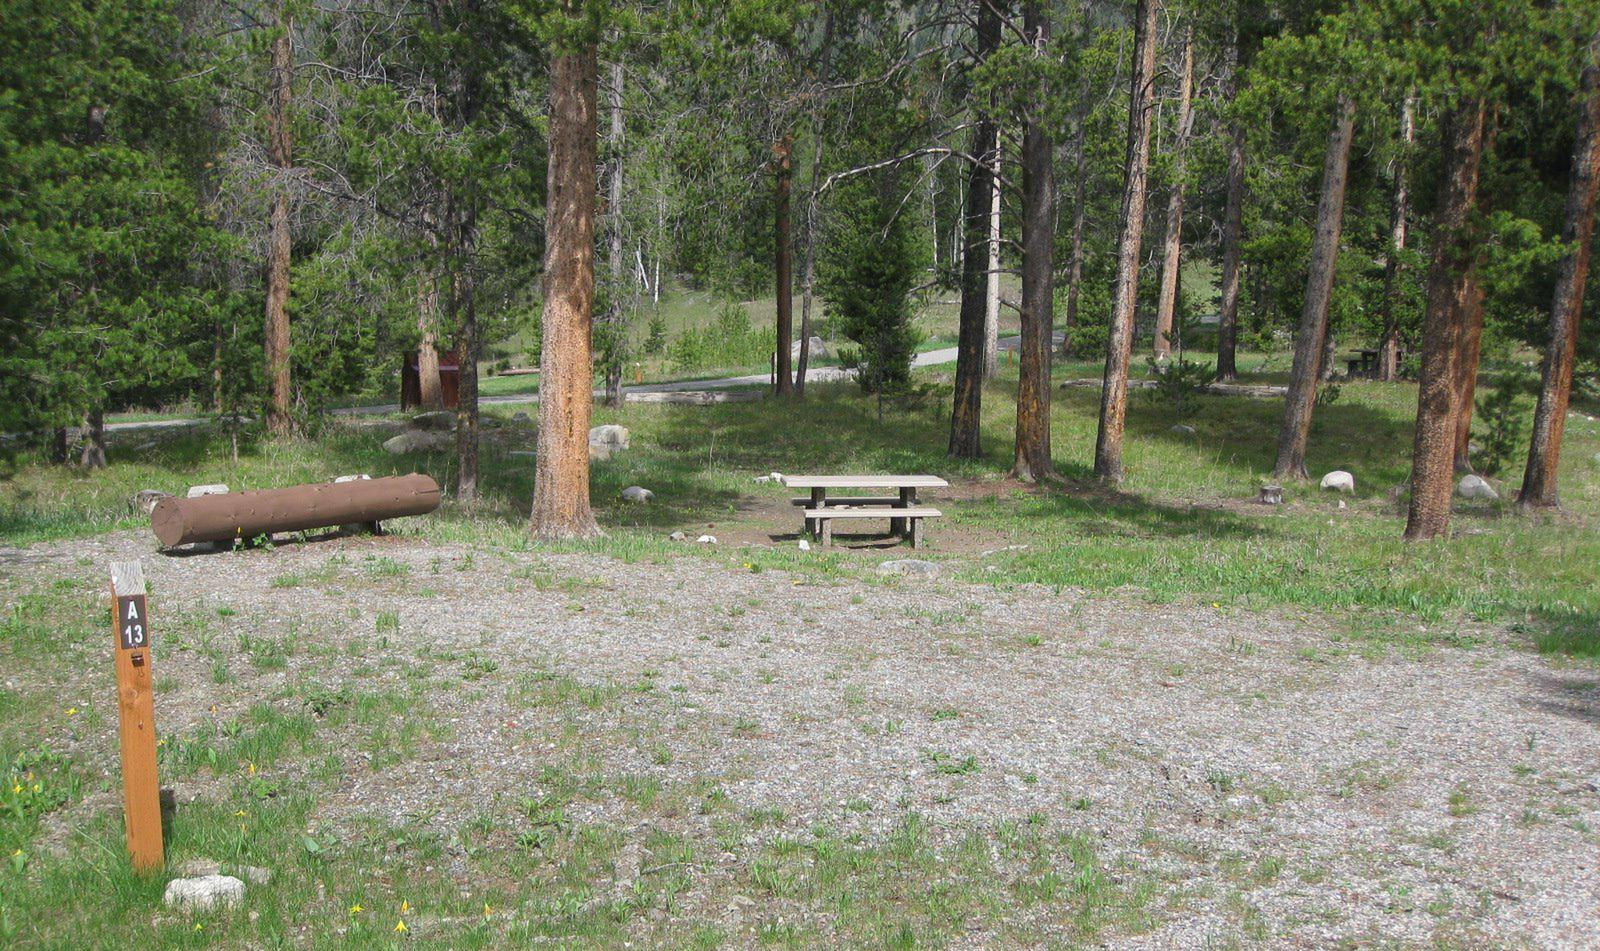 Site A13, campsite surrounded by pine trees, picnic table & fire ringSite A13